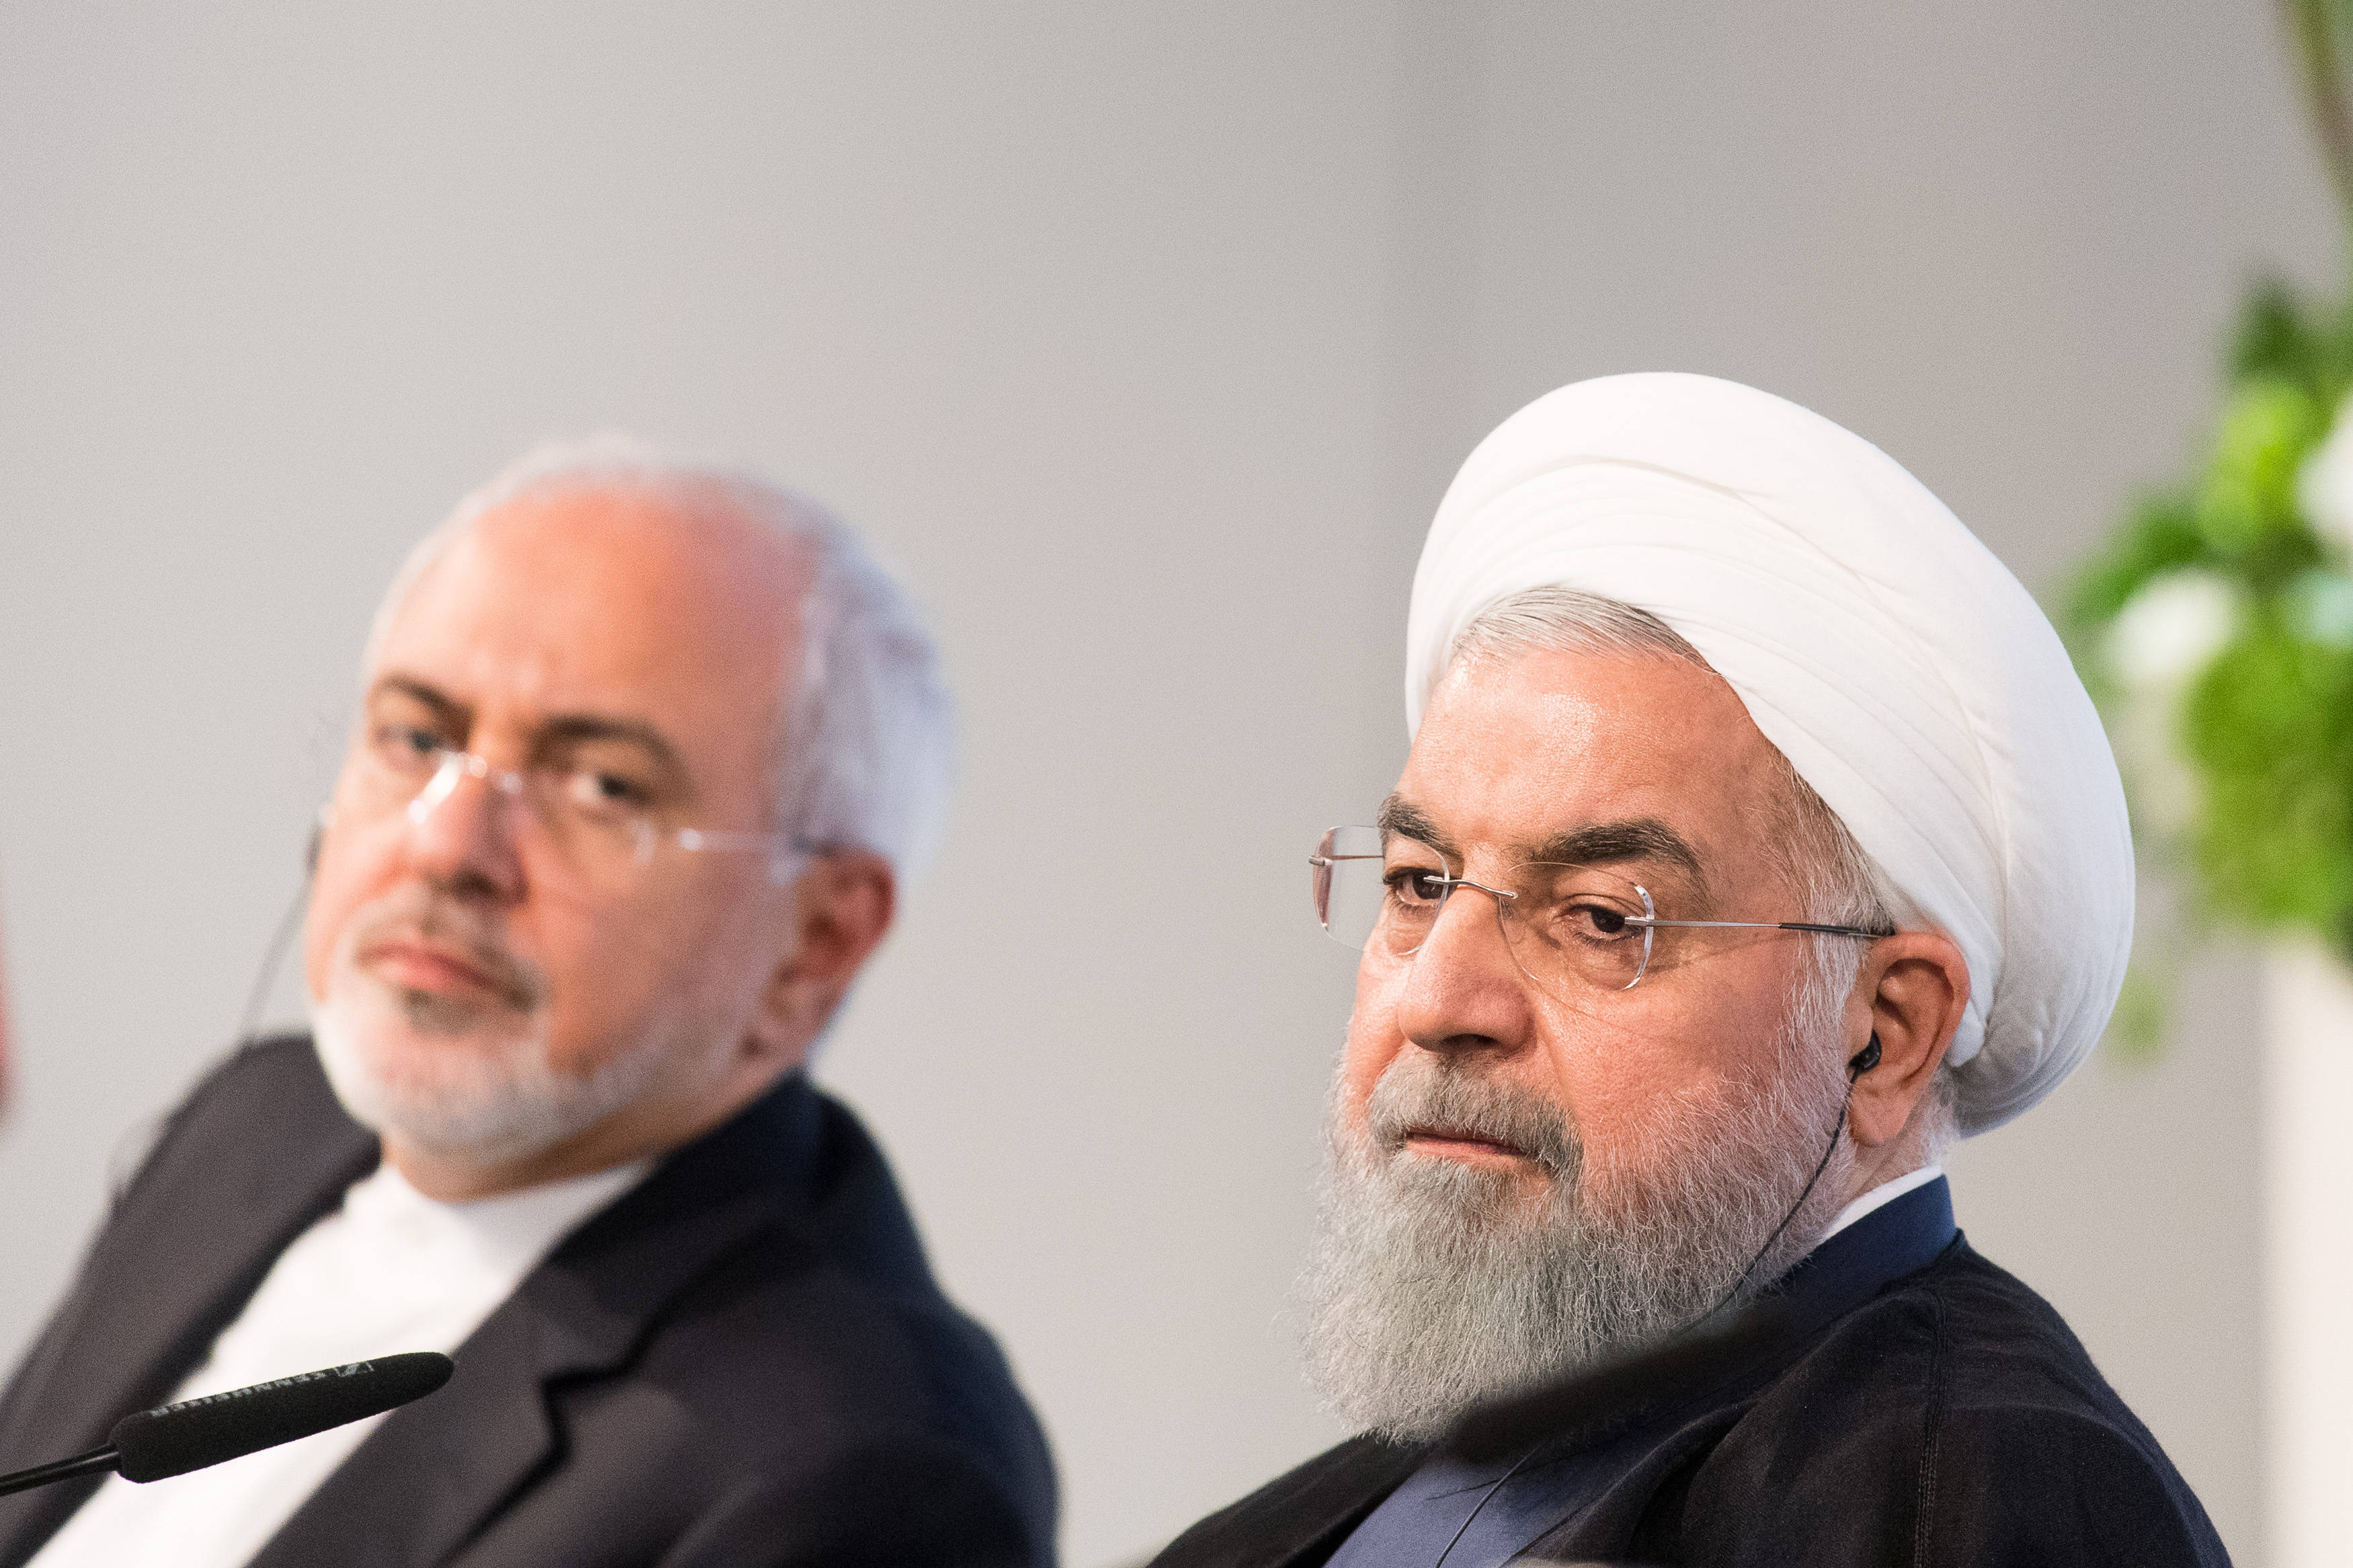 Why Iran won't talk to Trump, explained in one paragraph